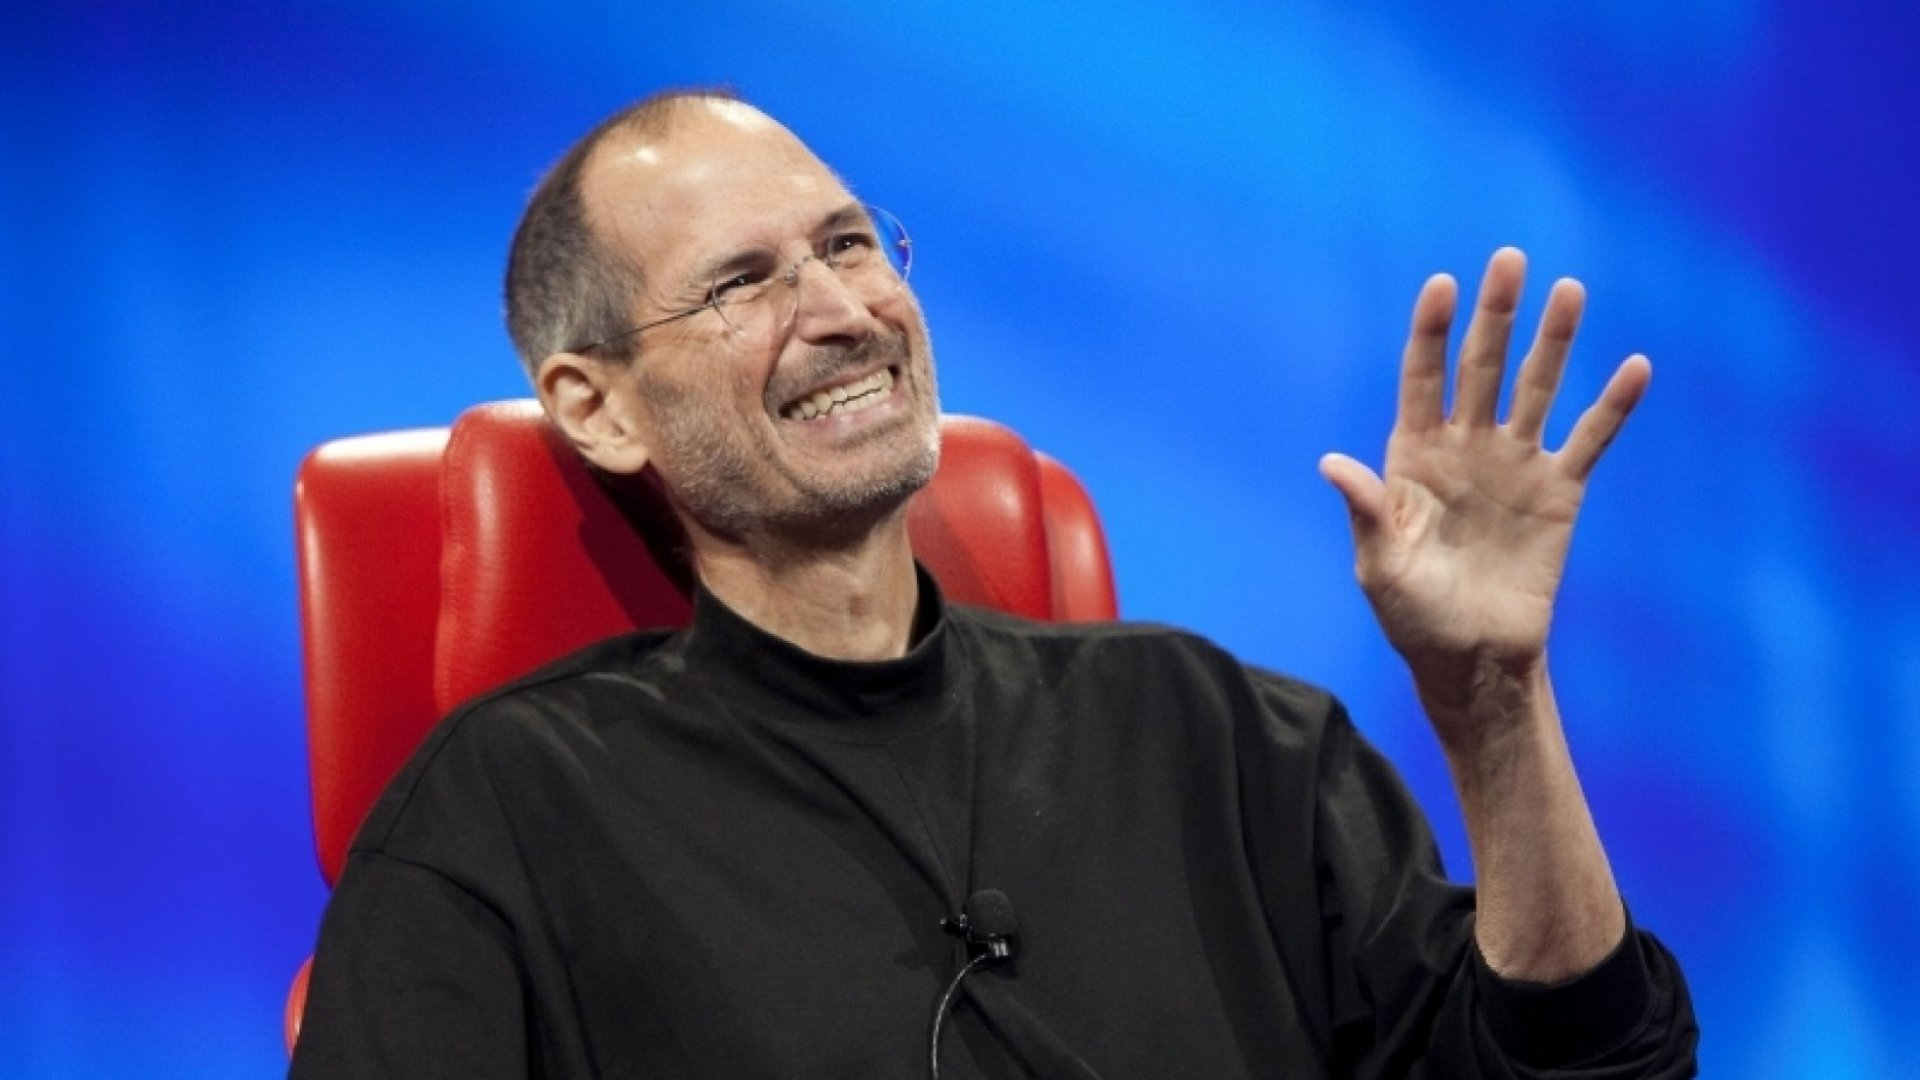 7 Inspiring Steve Jobs Quotes That Just Might Change Your Life